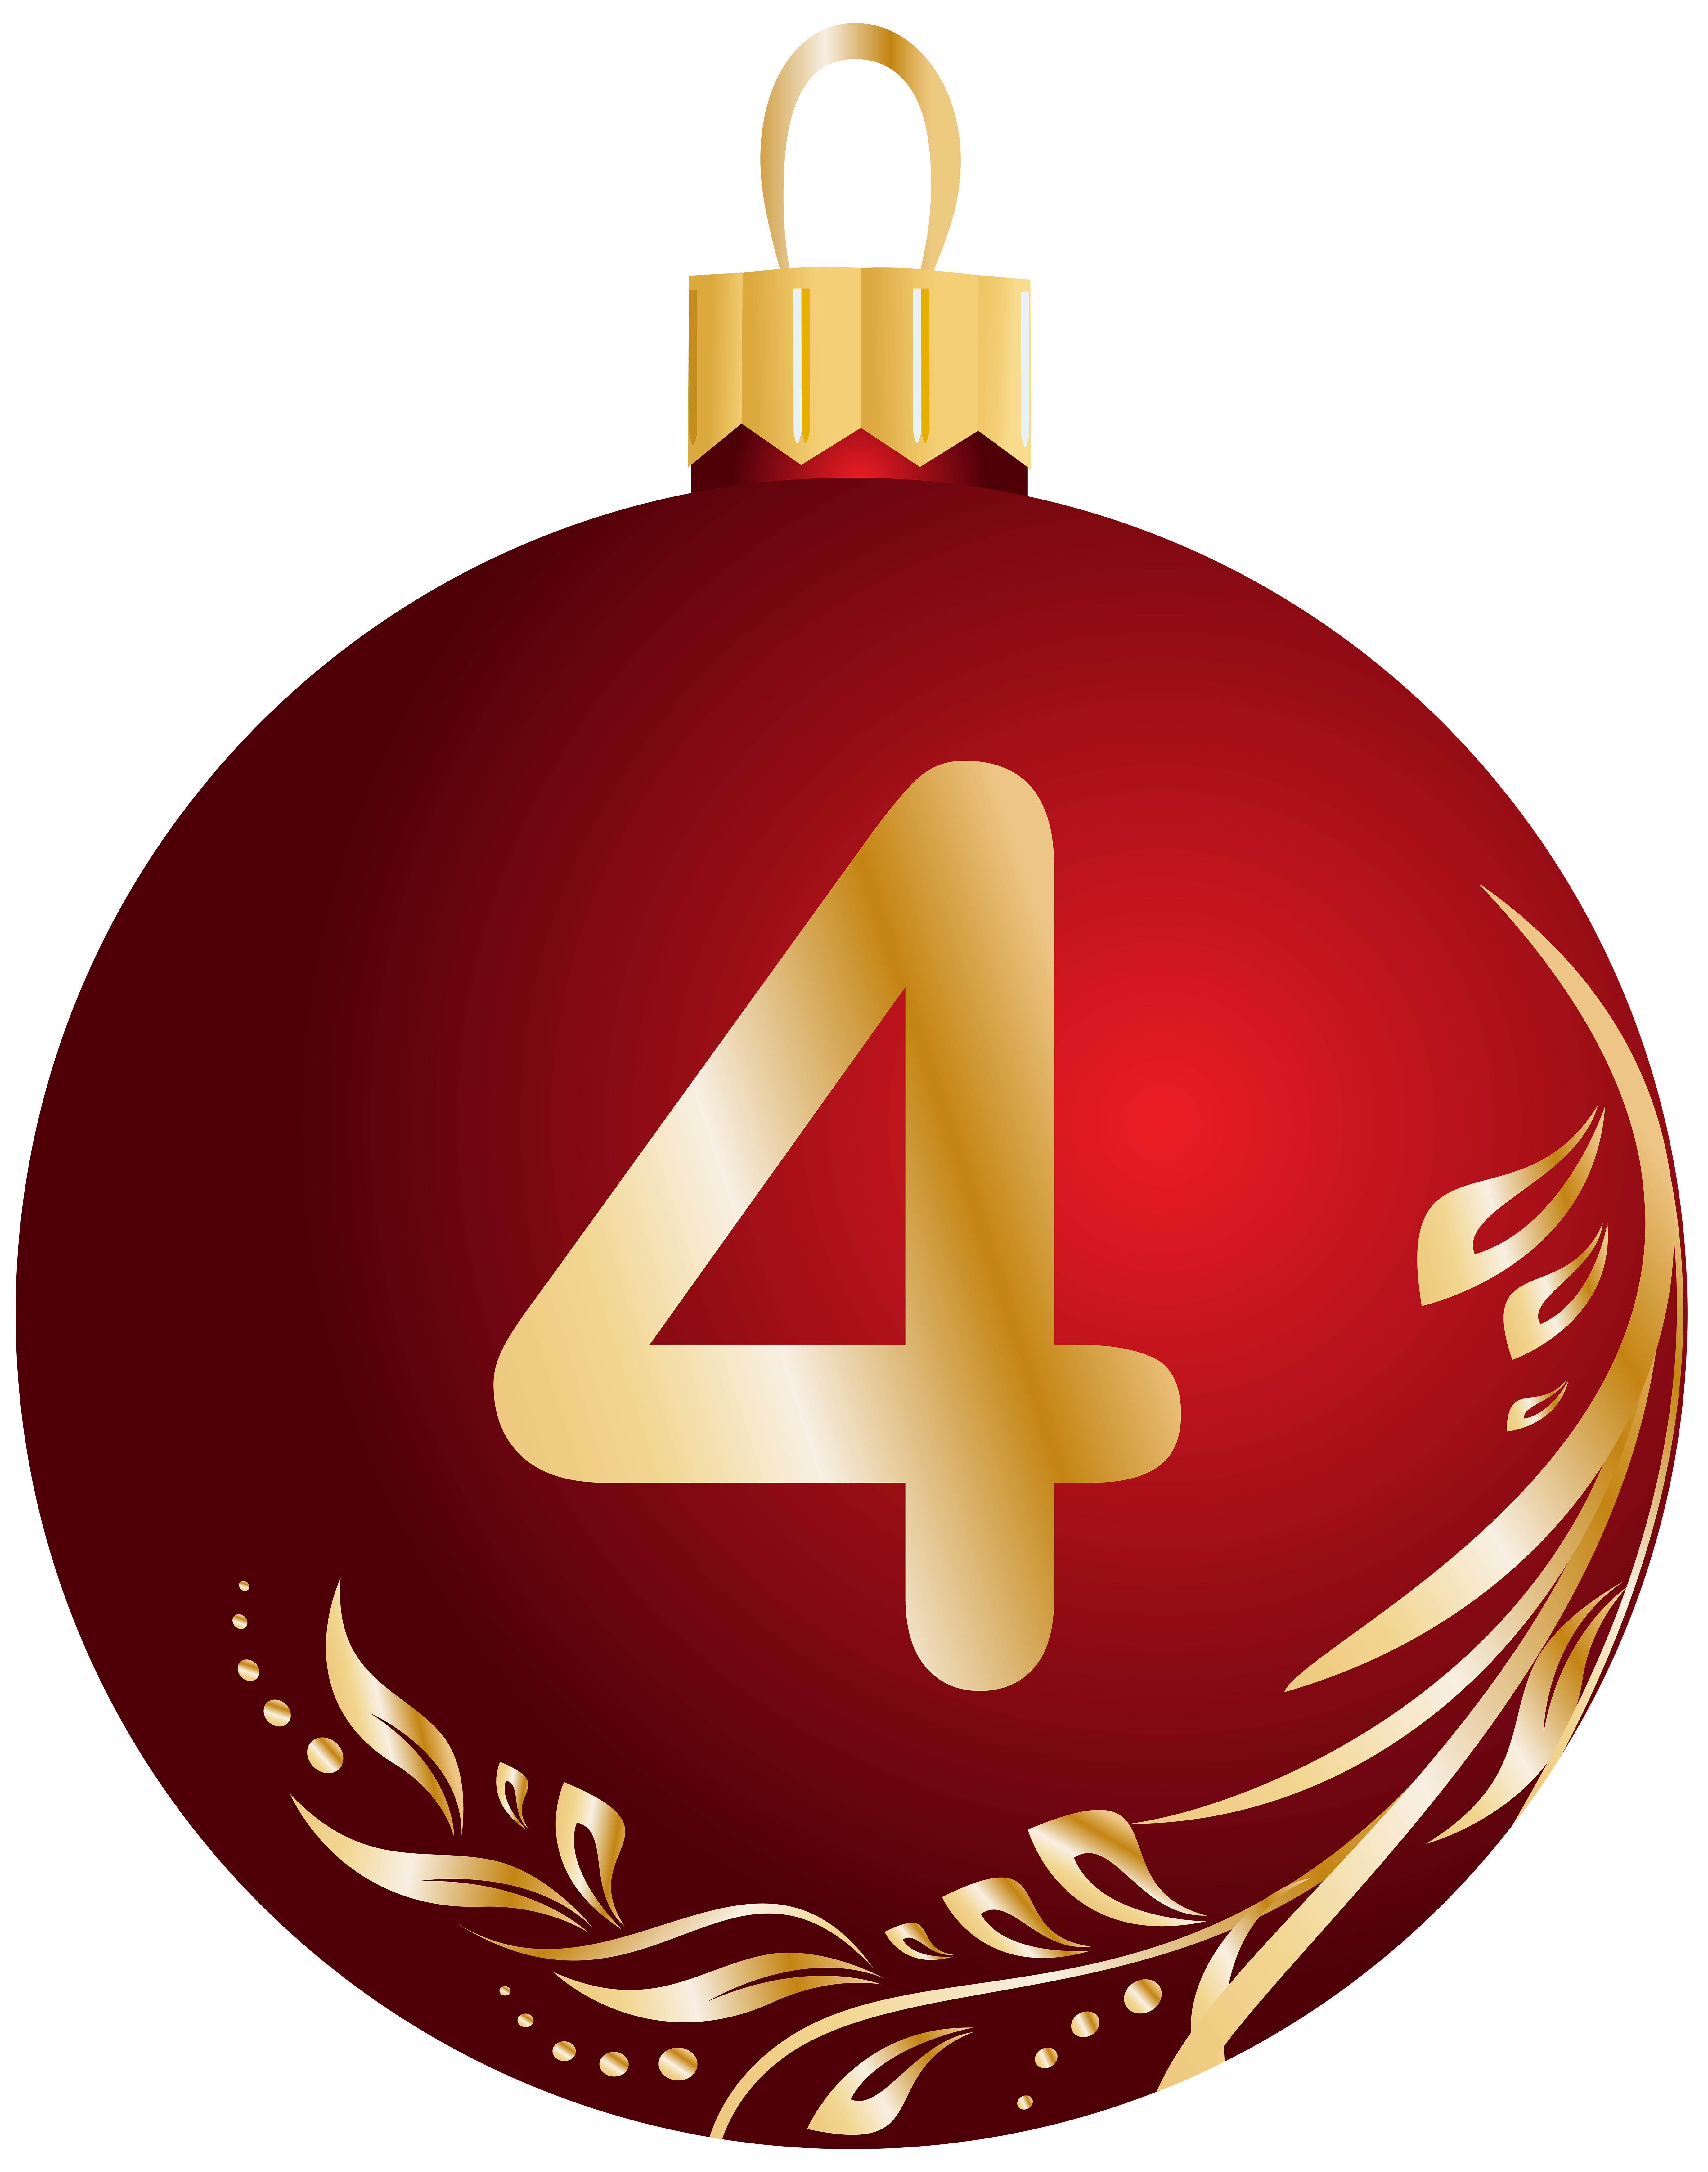 Four clipart 4 ball. Christmas number transparent png